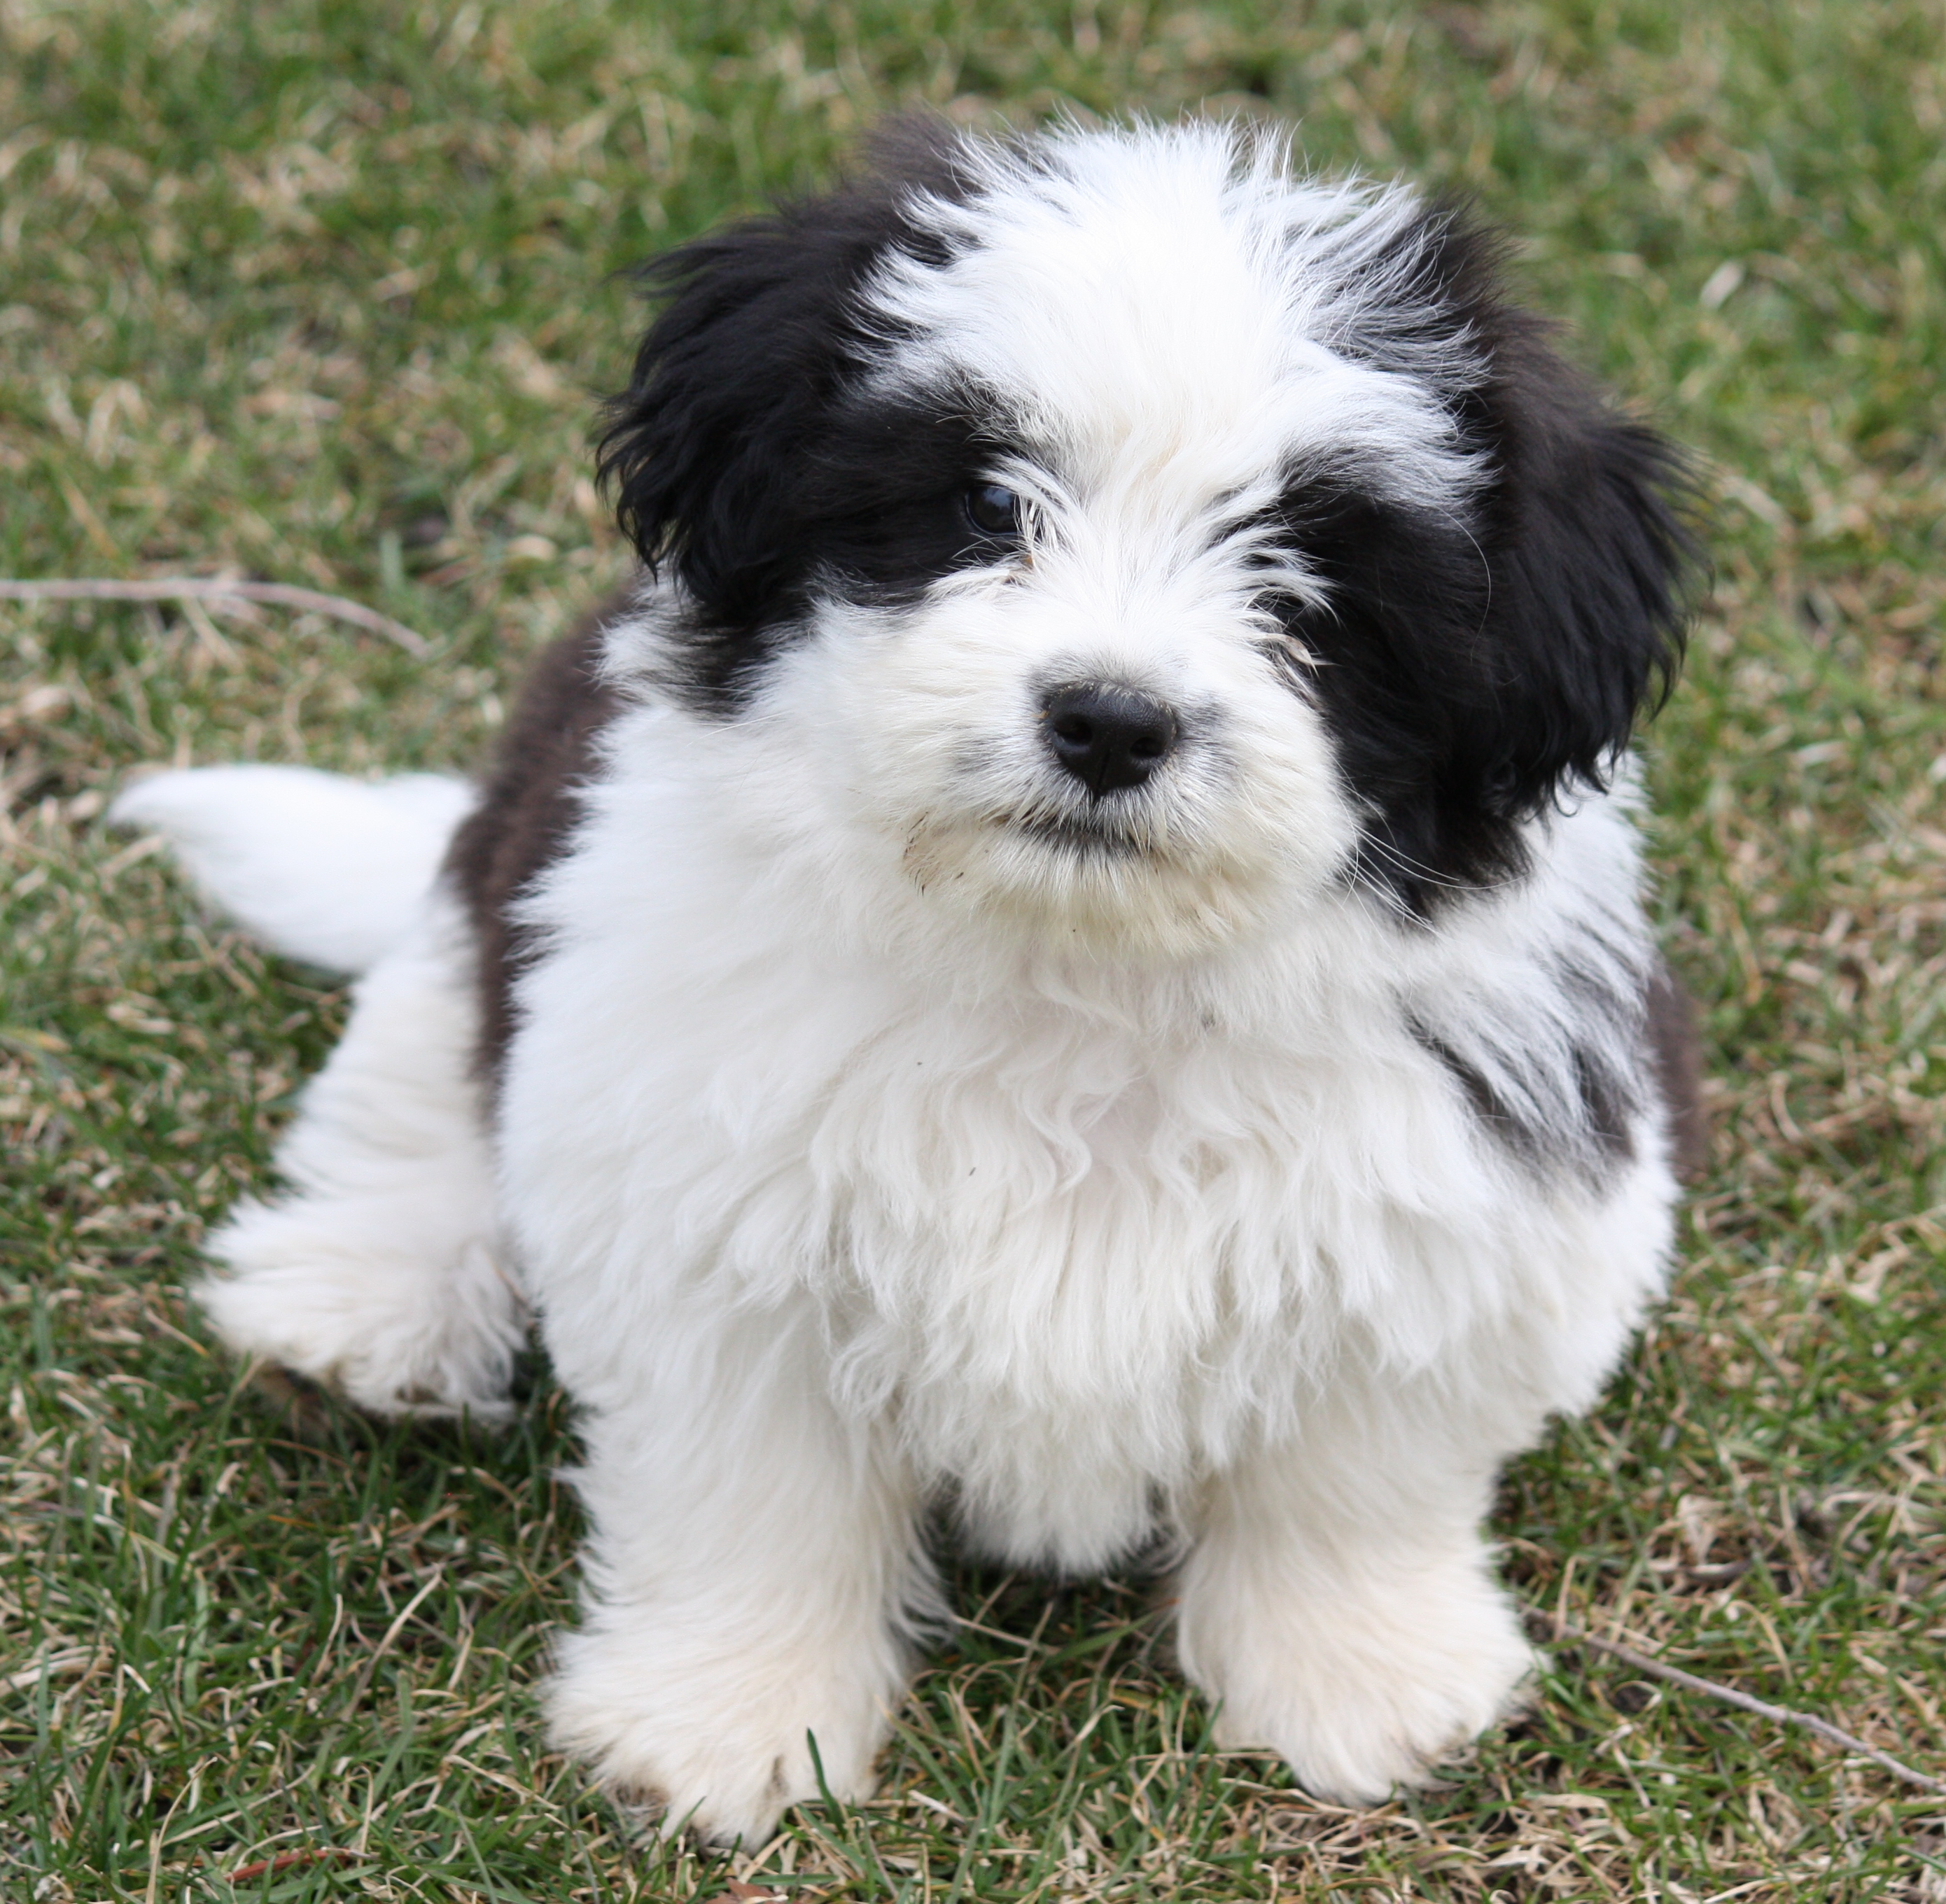 Description Corgi Shih tzu Hybrid 10weeks.jpg